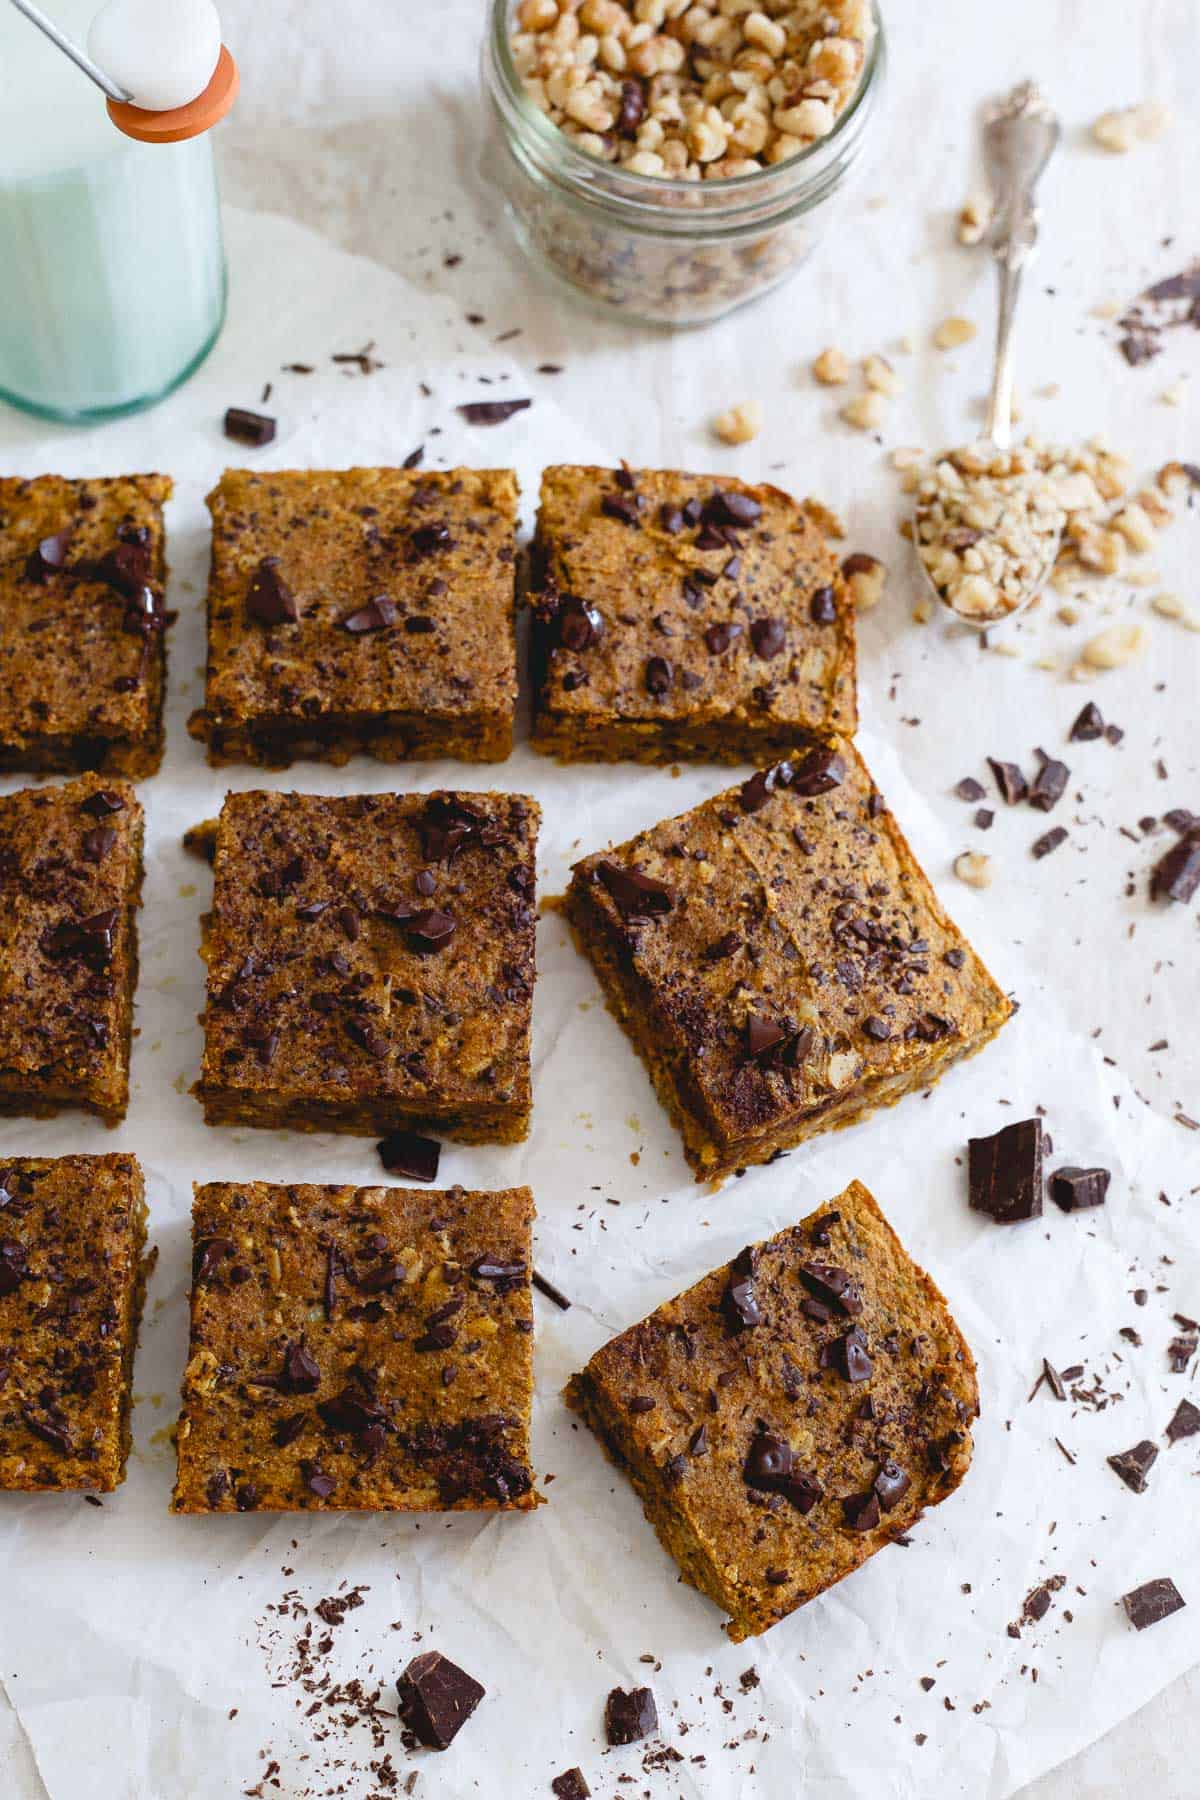 Pour a cold glass of milk and enjoy one of these fall-centric pumpkin chocolate chip bars for a treat!